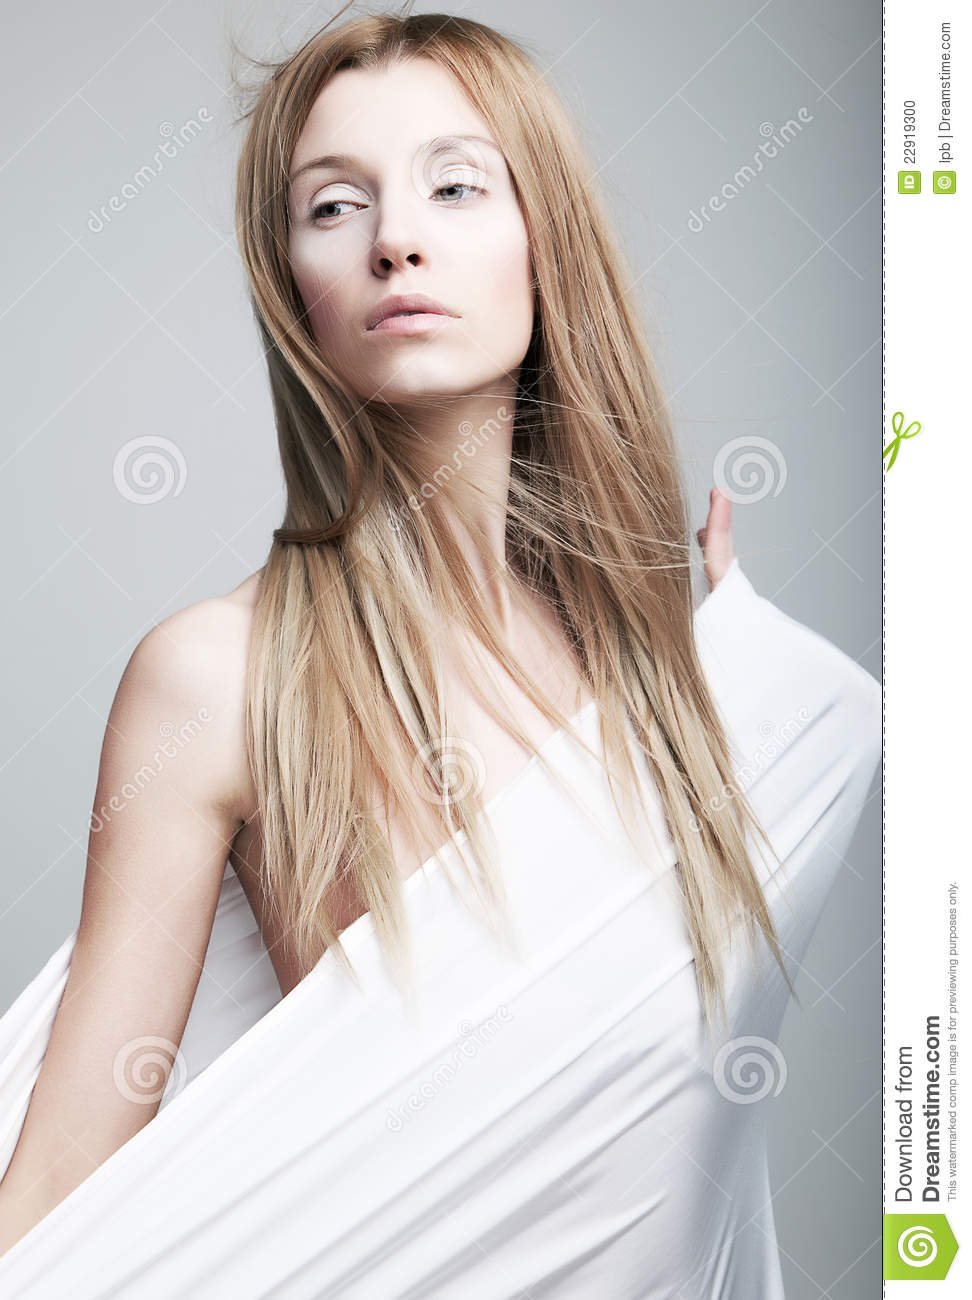 Alarmed Gentle Half Dressed Girl In White Clothes Stock Photo Image 22919300